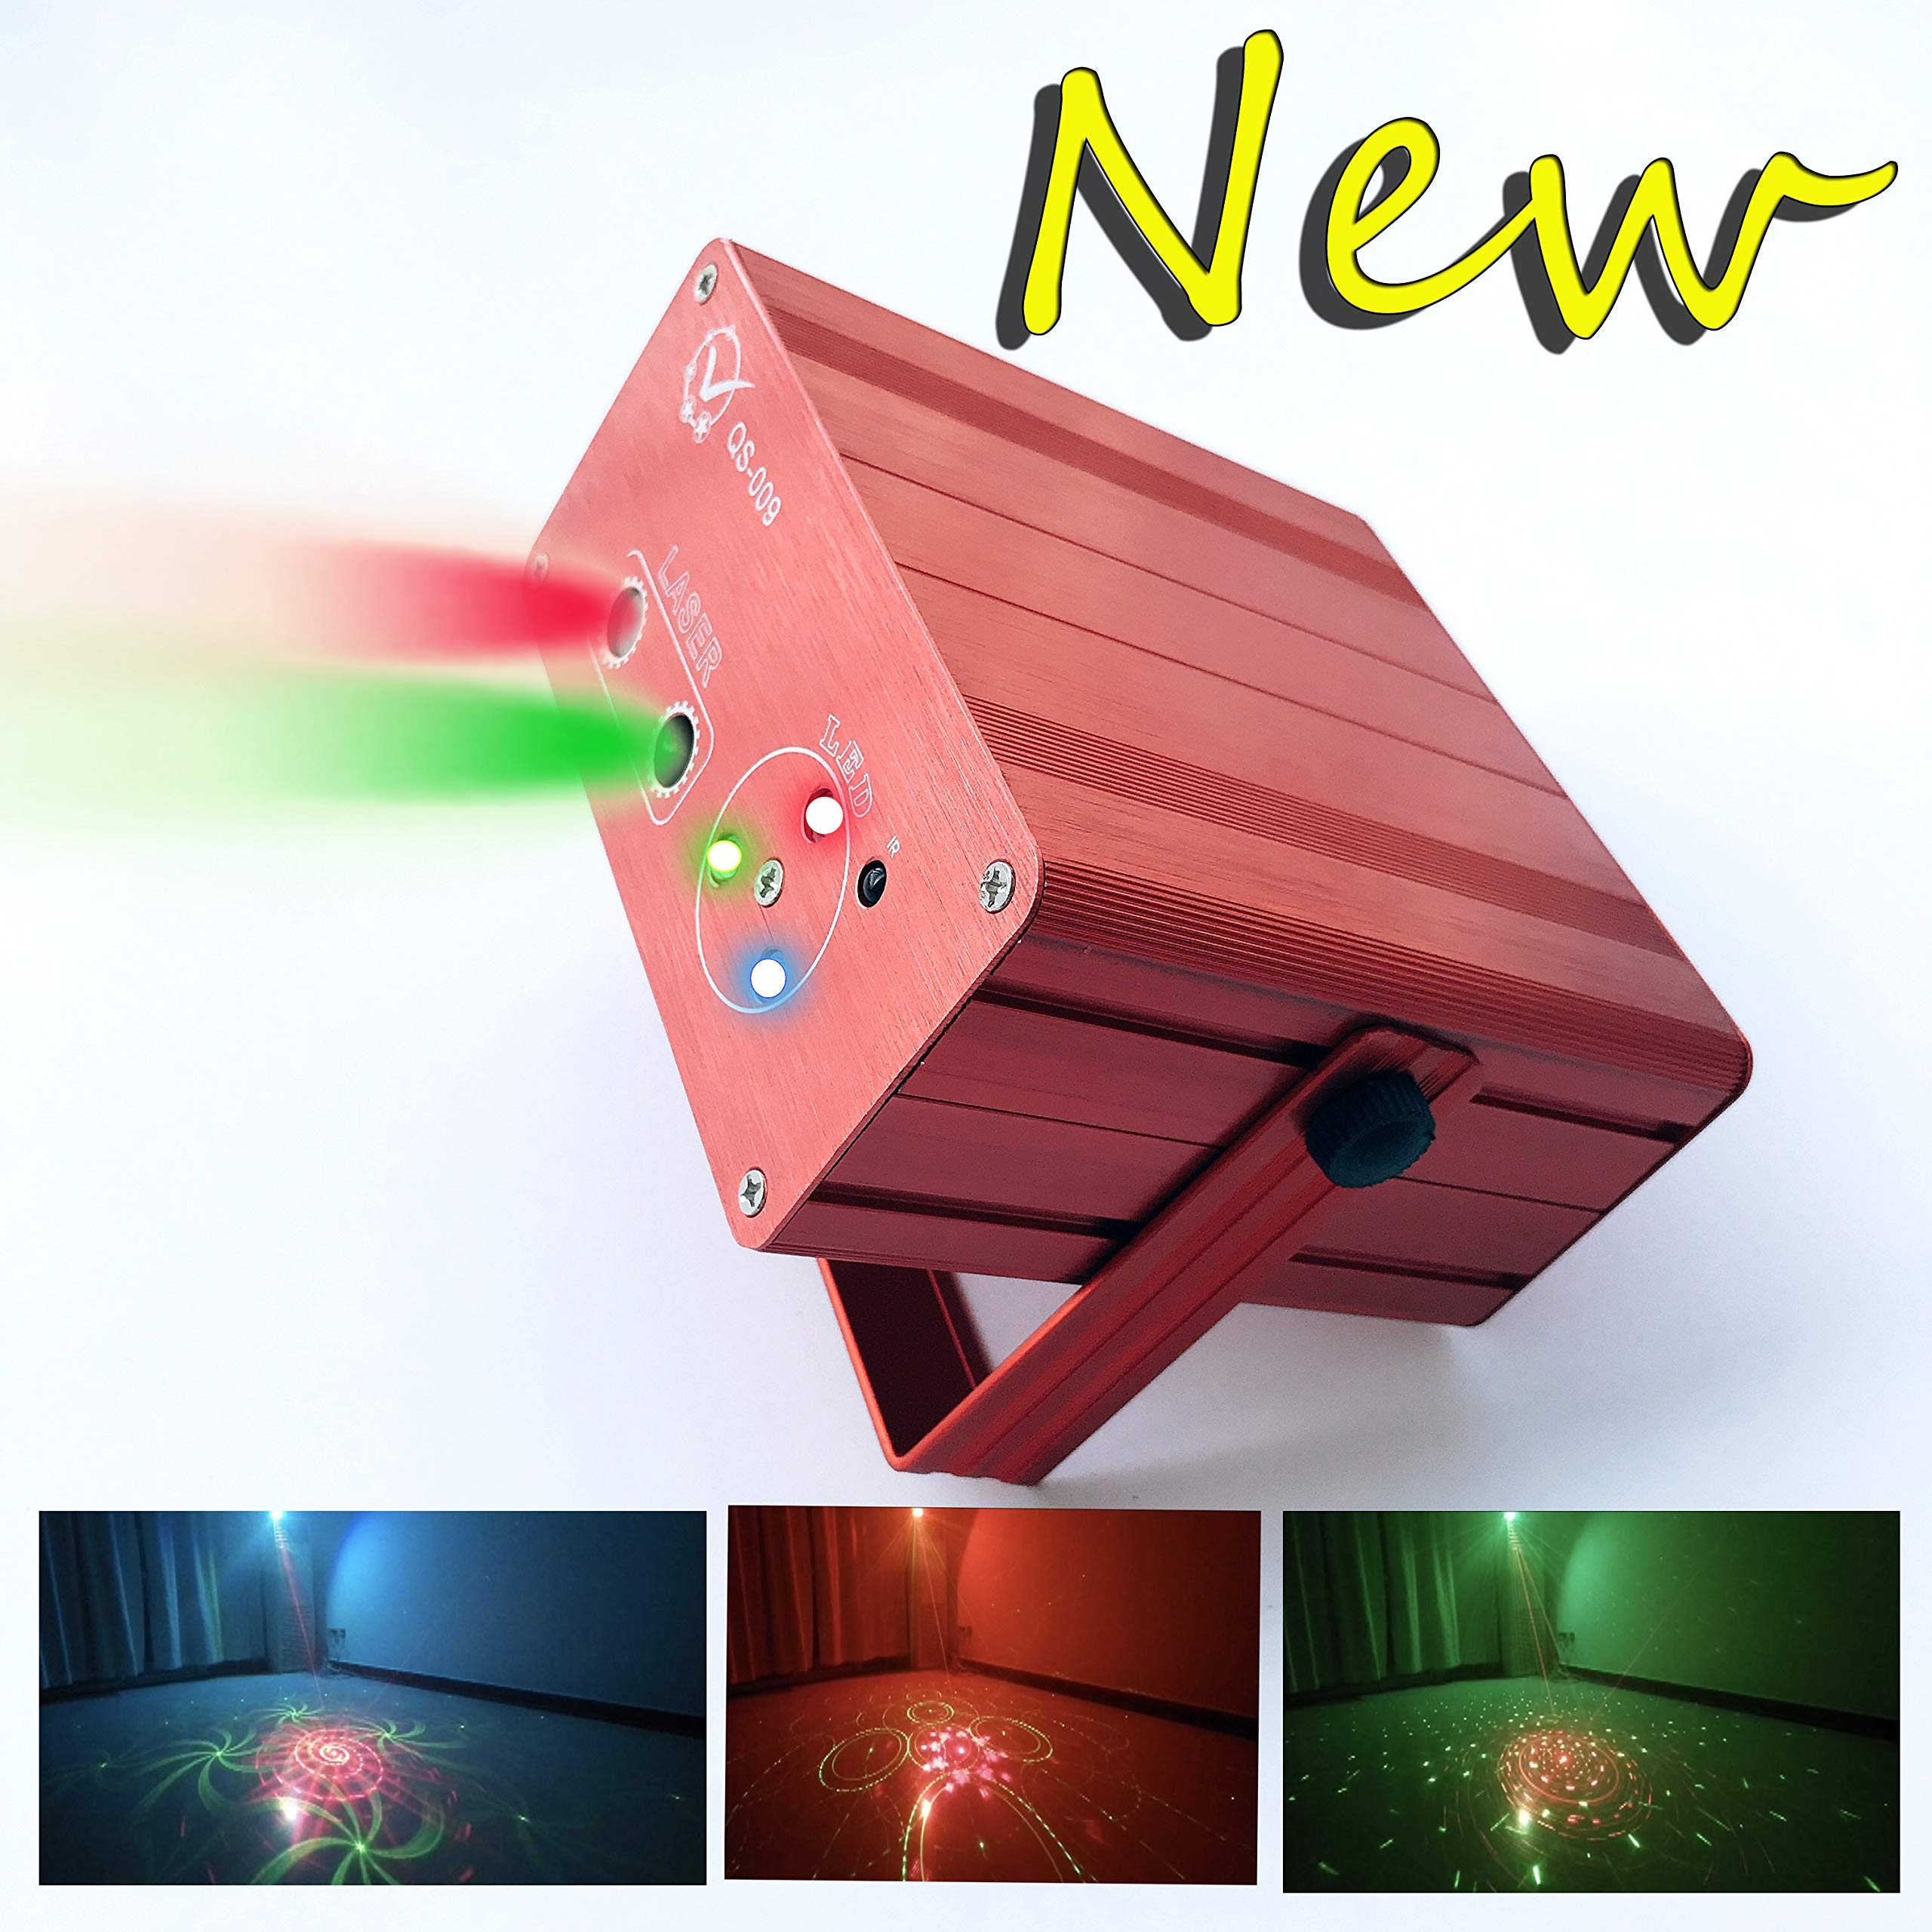 3D Graphics Laser Light 5Light Source 5V 2A Control Background Color With IR Remote Control Voice Activated Stage Lamp Projector Lamp Lumiere DJ Club Party Live Show Projector square by Zaytoner